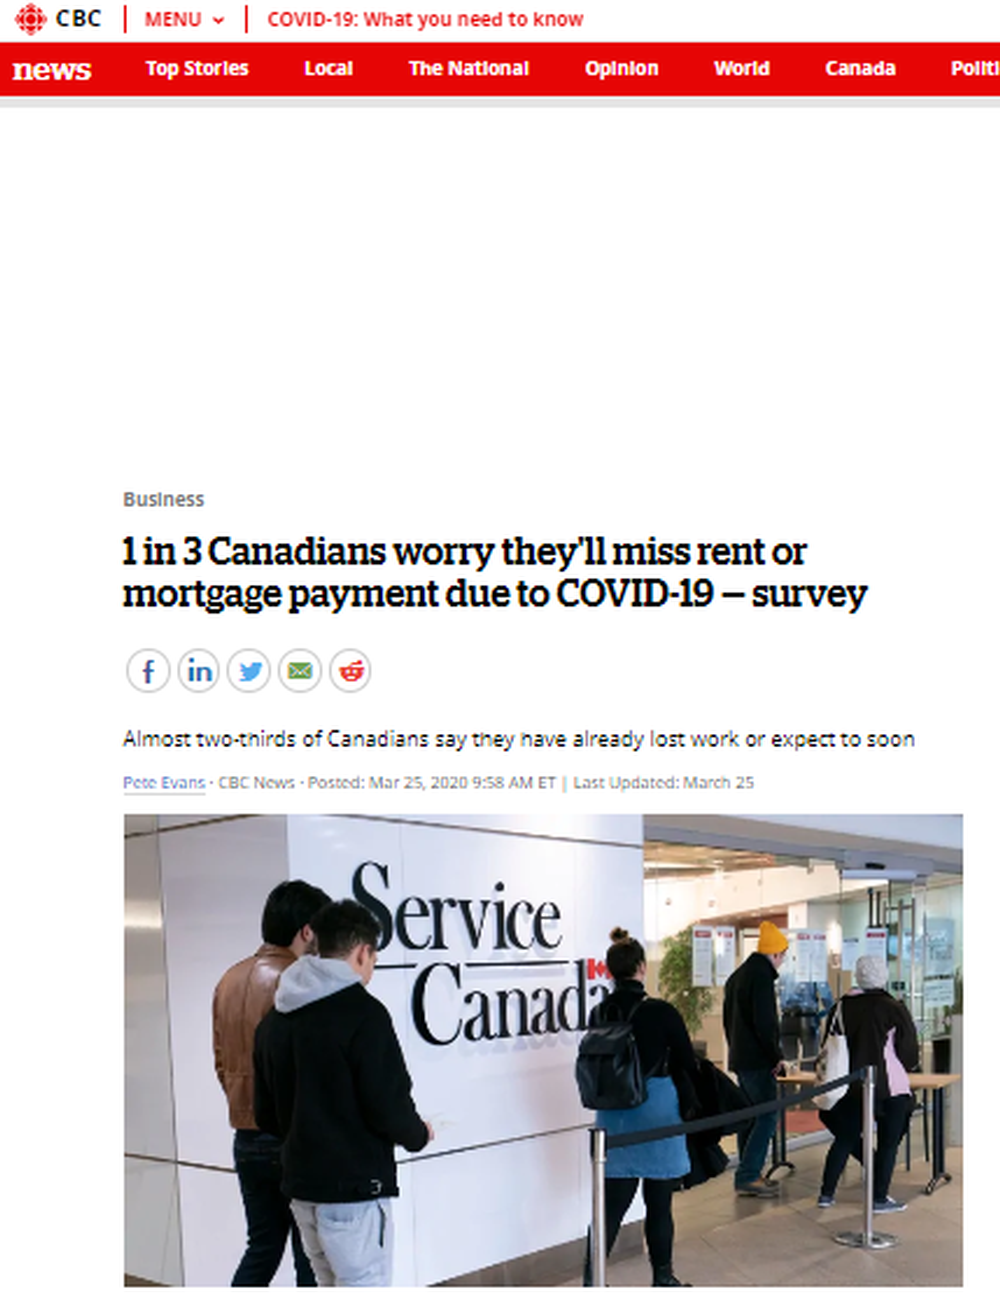 1 in 3 Canadians worry they ll miss rent or mortgage payment due to COVID-19 — survey   CBC News.png